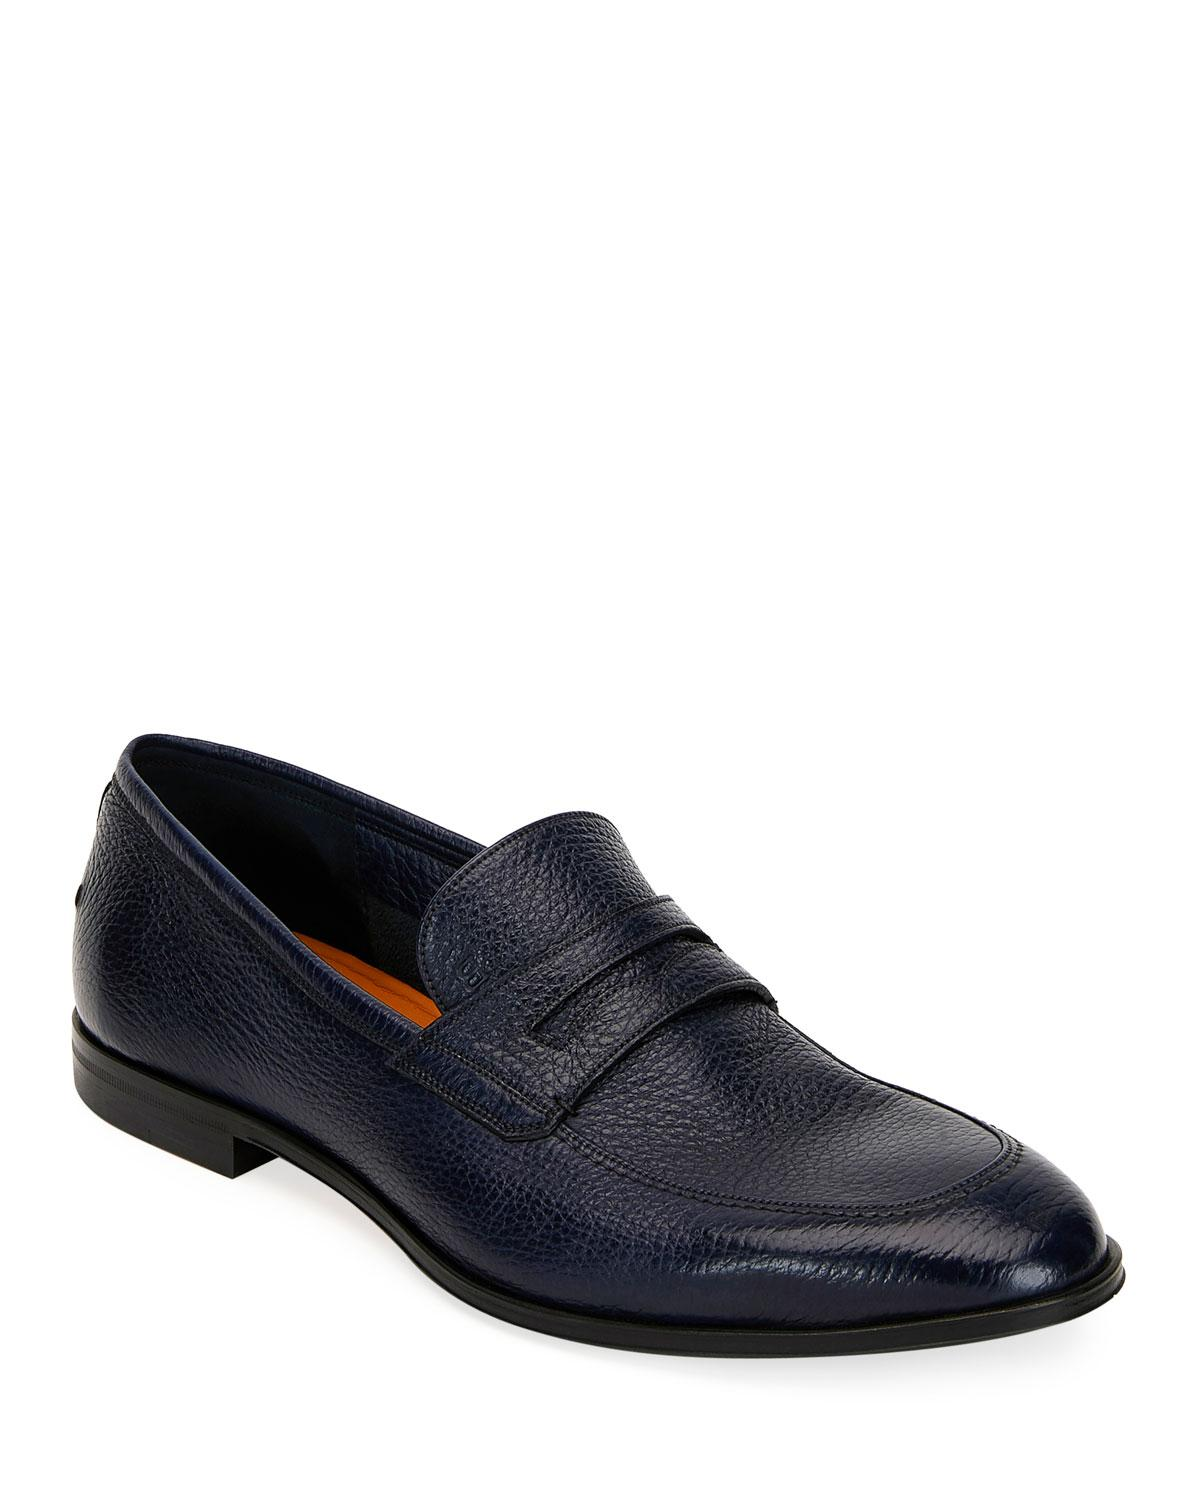 5d4c155a2 Lyst - Bally Men s Webb Leather Penny Loafers Dark Blue in Blue for Men